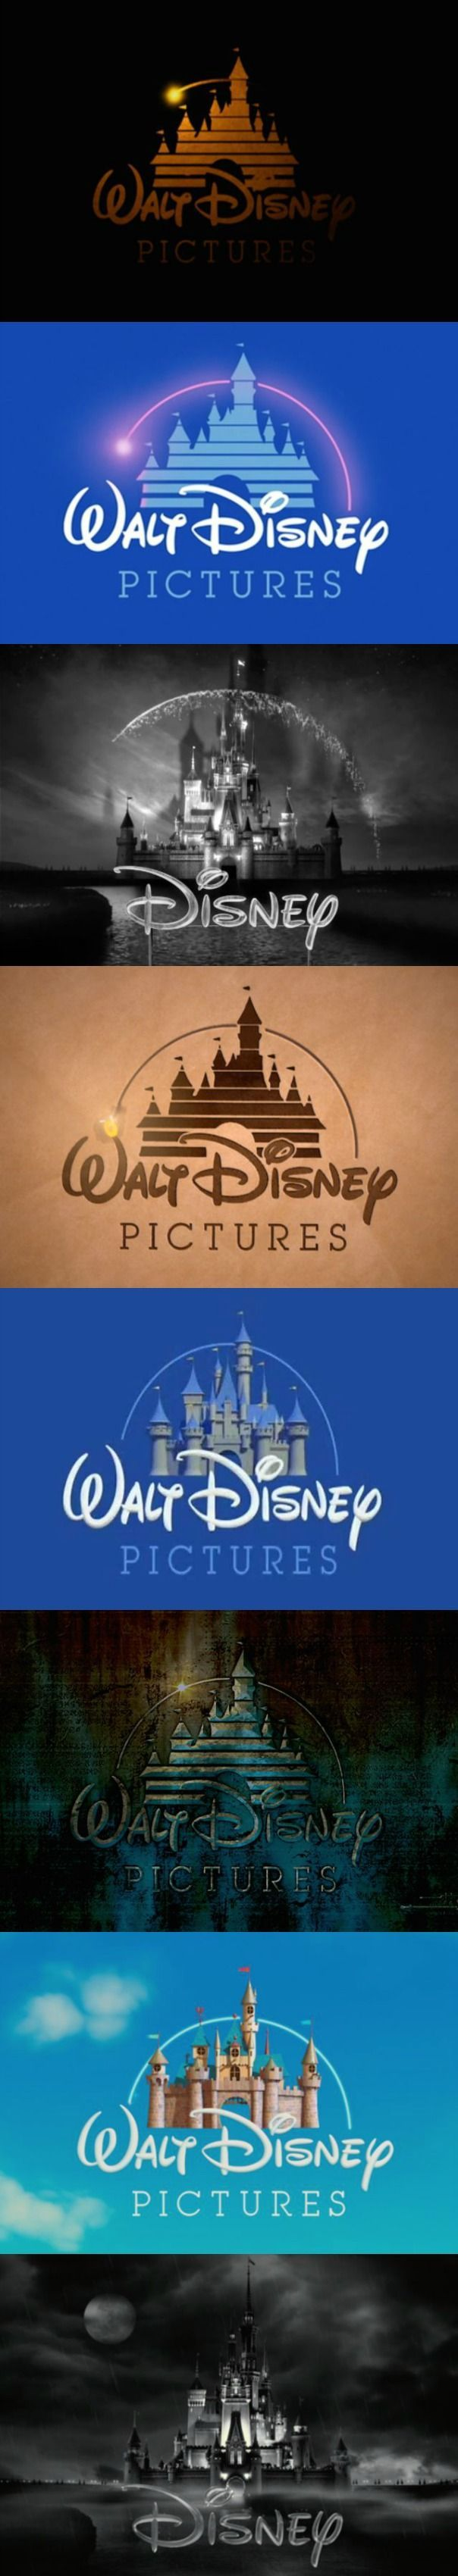 What Film Is This Disney Opening From